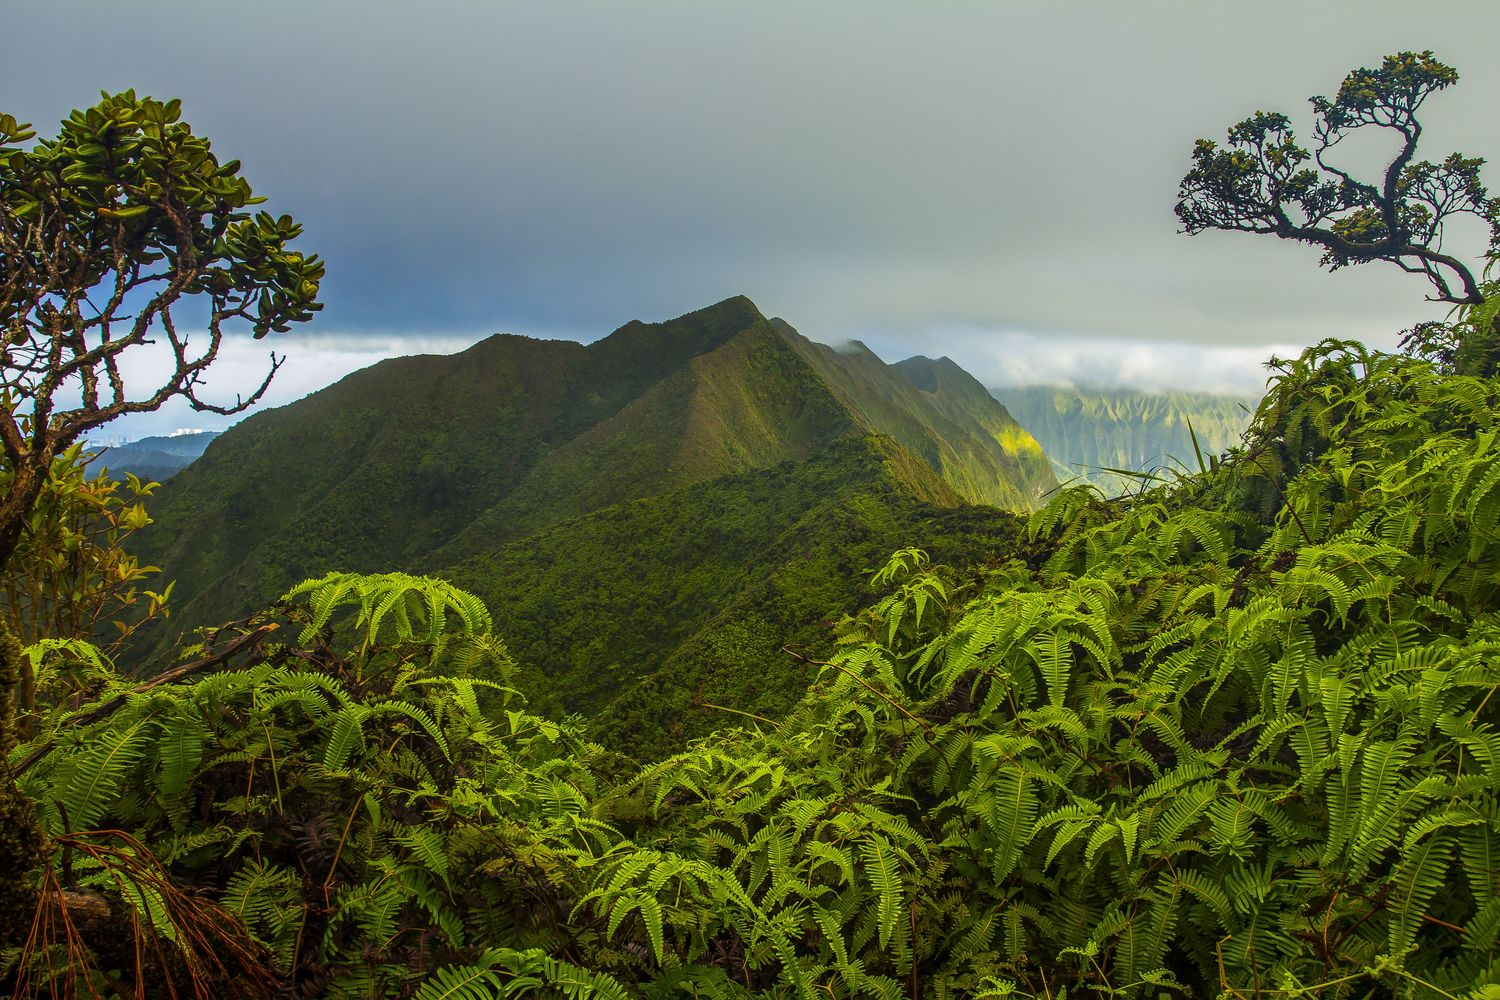 The Ko'olau summit on the island of O'ahu in Hawai'i where researchers found that biodiversity is higher in forests on older islands than on younger ones, but that this effect may be diluted by introduced species.